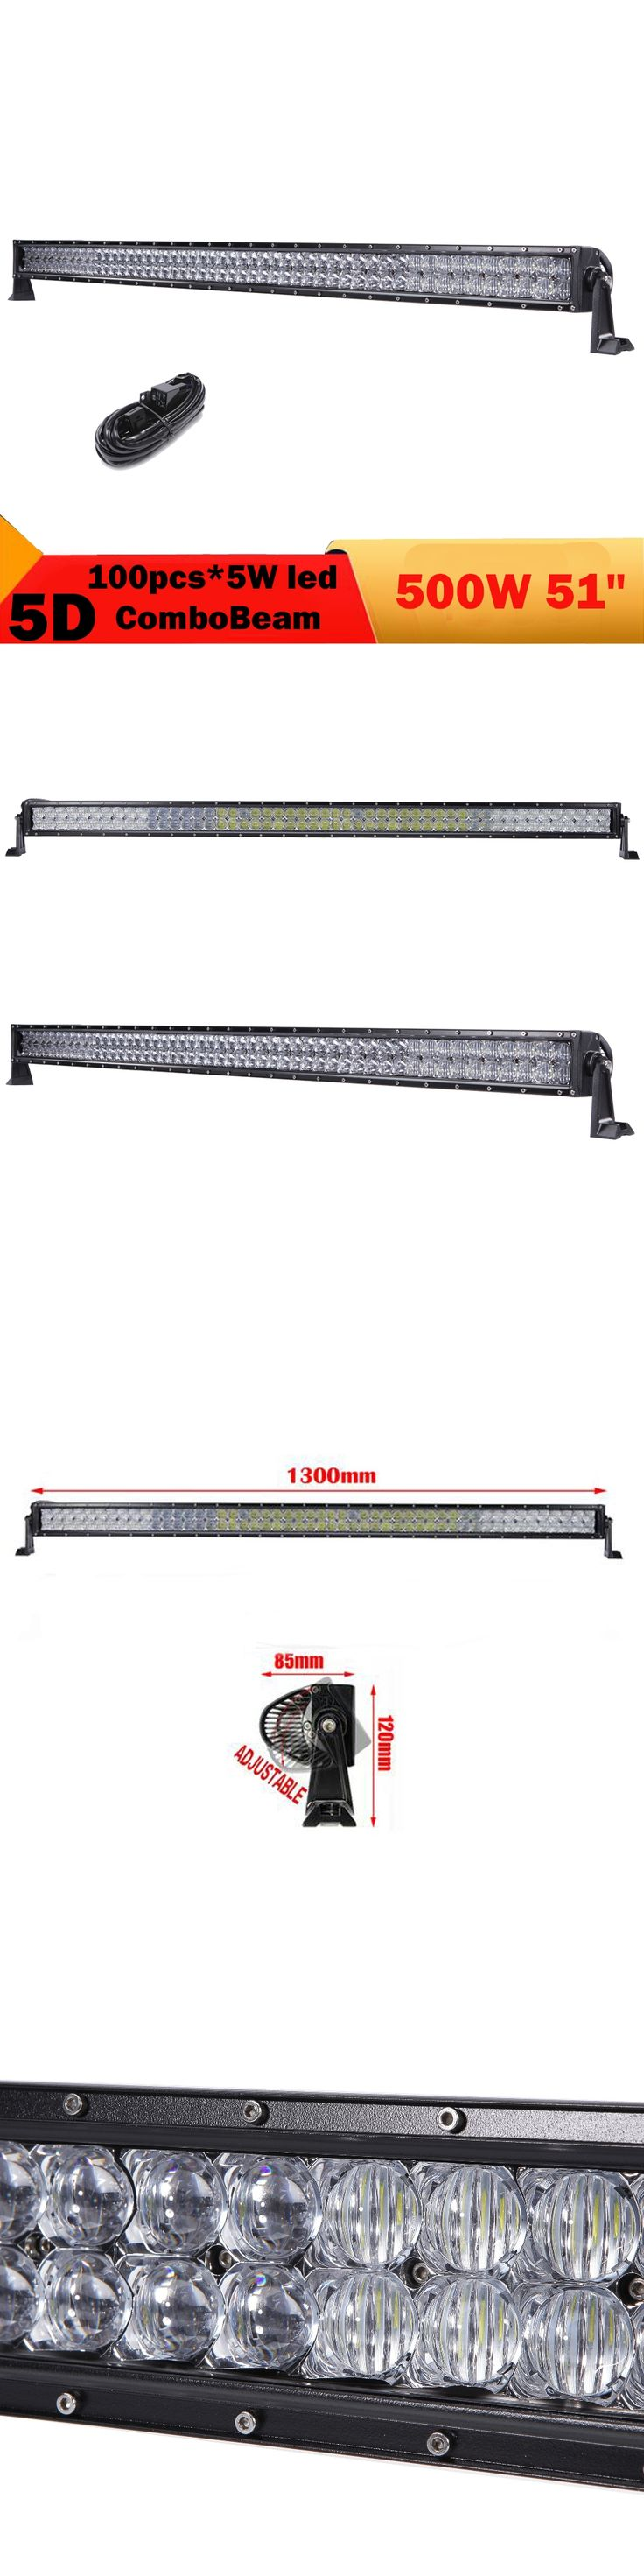 5D 500W LED Light Bar 51 Inch Combo Offroad DRL 4X4 4WD Truck Boat Bus Car Wagon ATV UTE SUV Fog Lamp For Jeep Wrangler Patriot